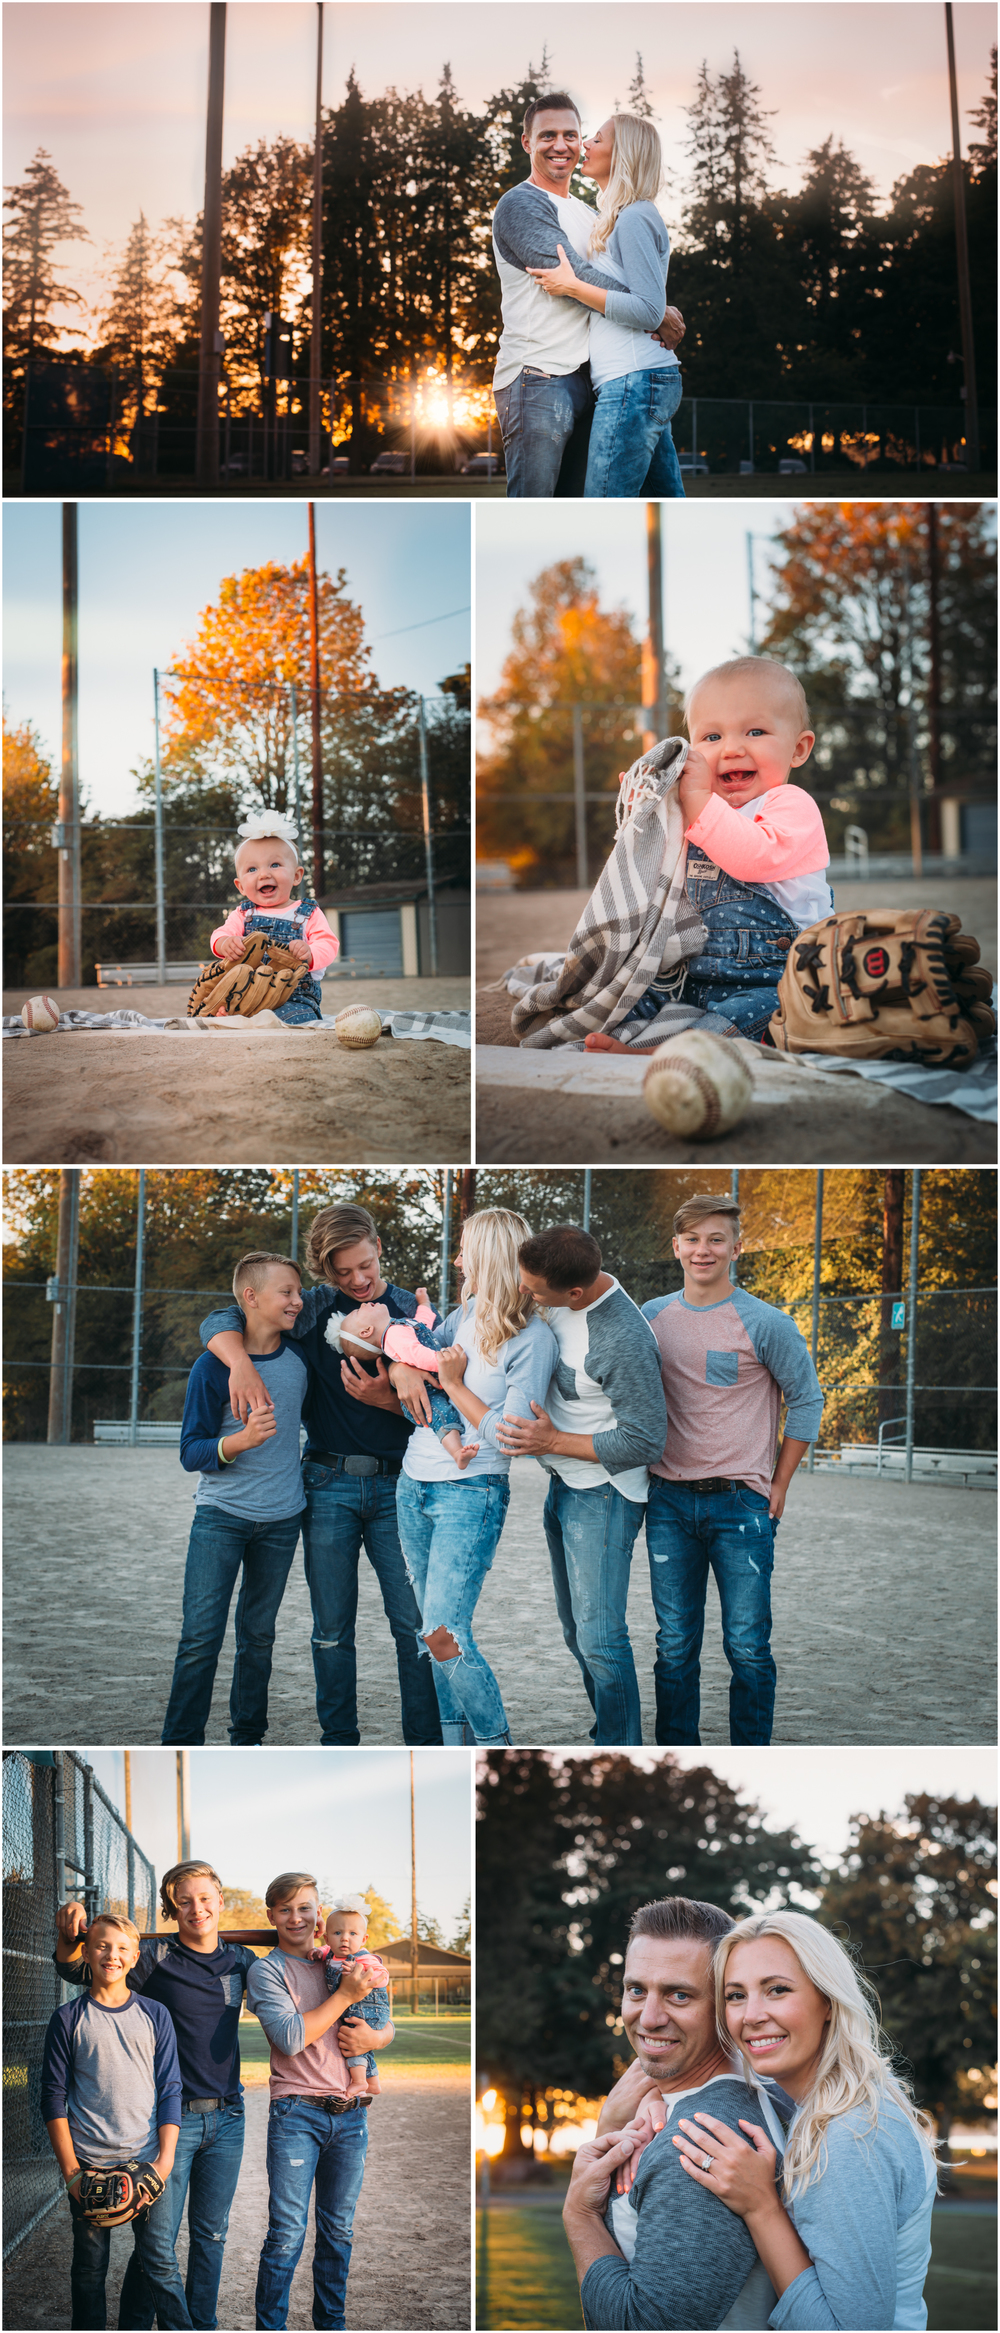 Family Photos at a baseball field - House of Five Blog